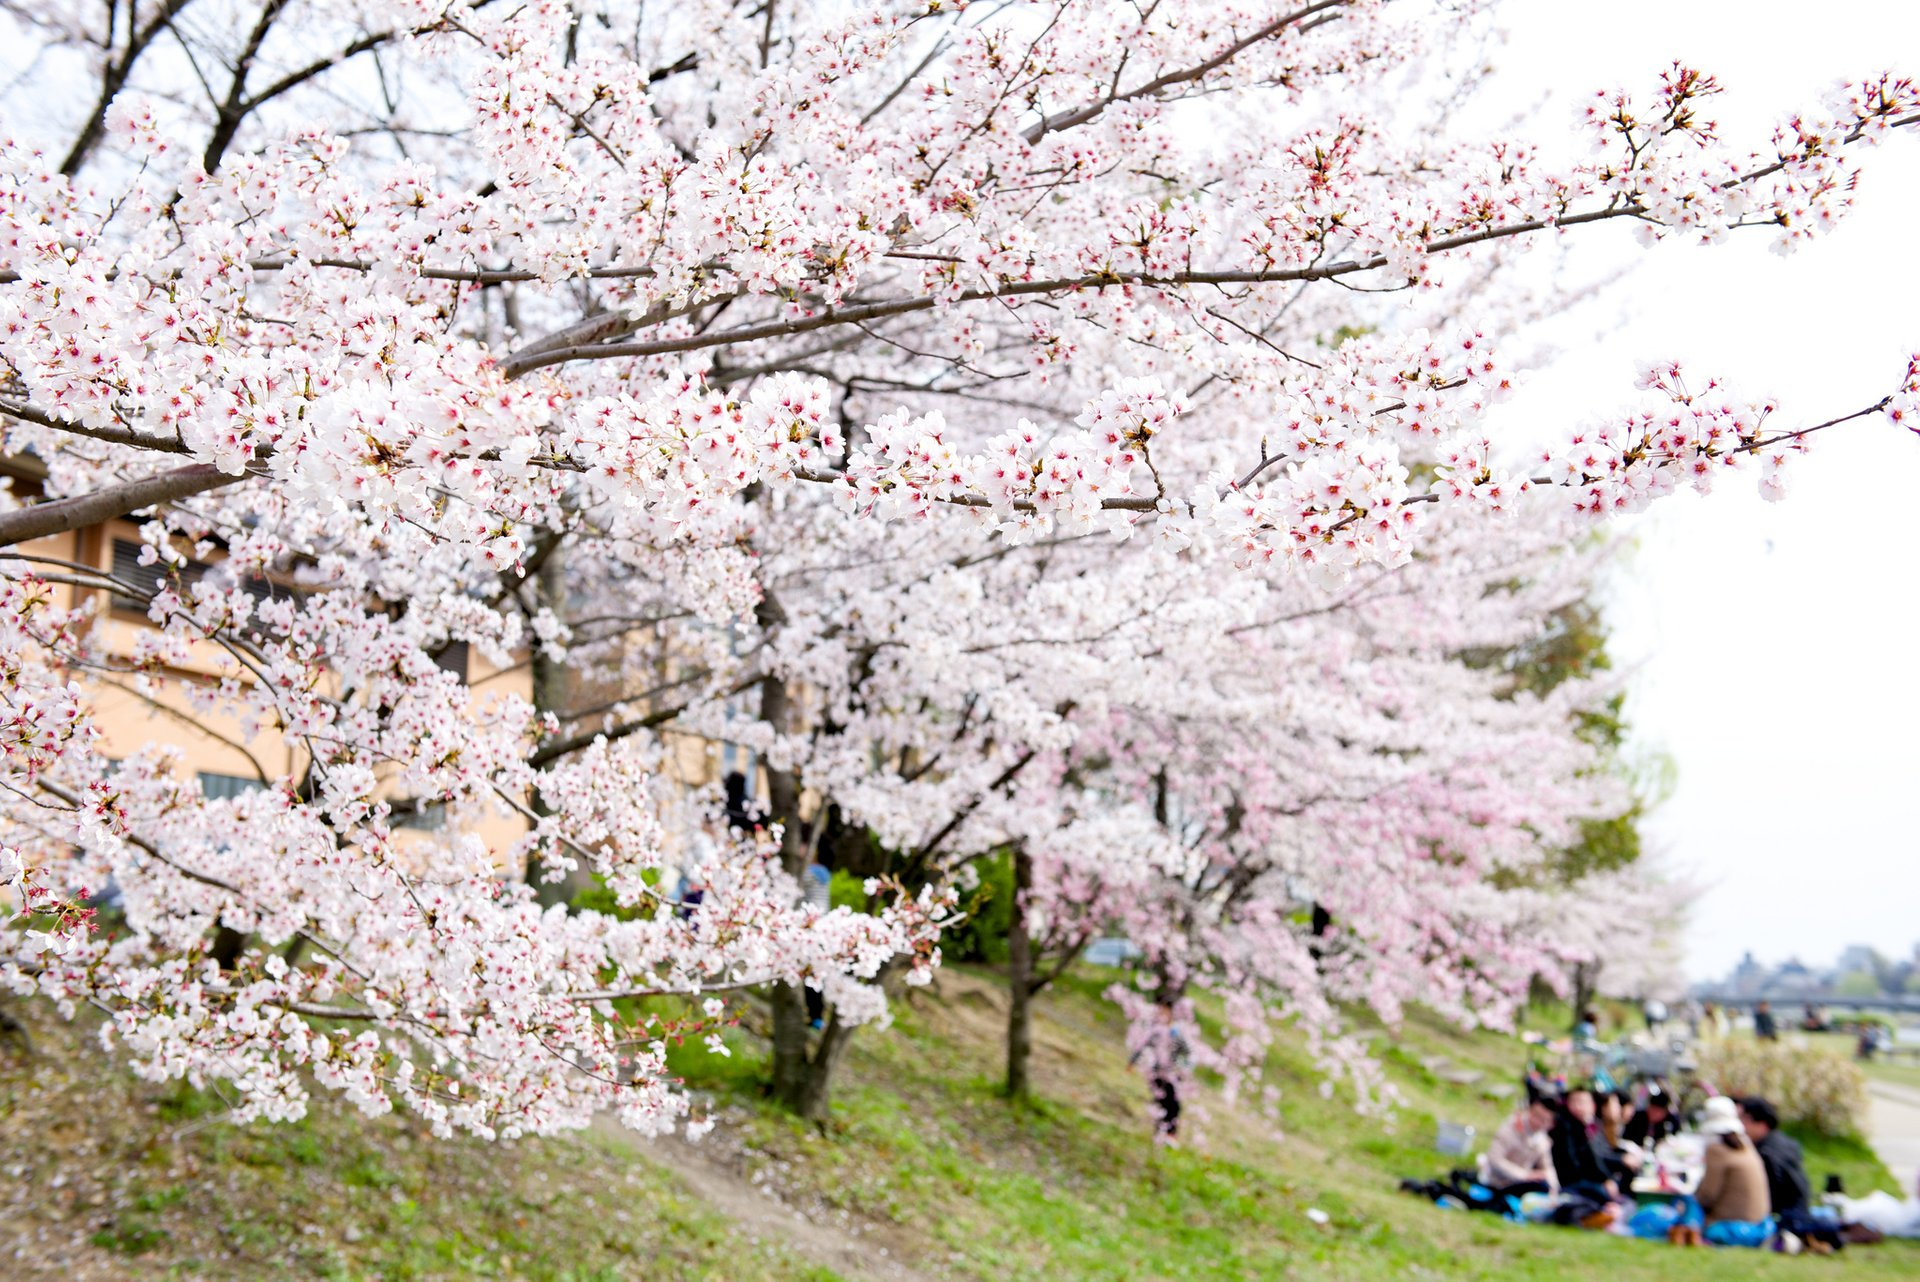 Best time to see Cherry Blossom in Kyoto 2020